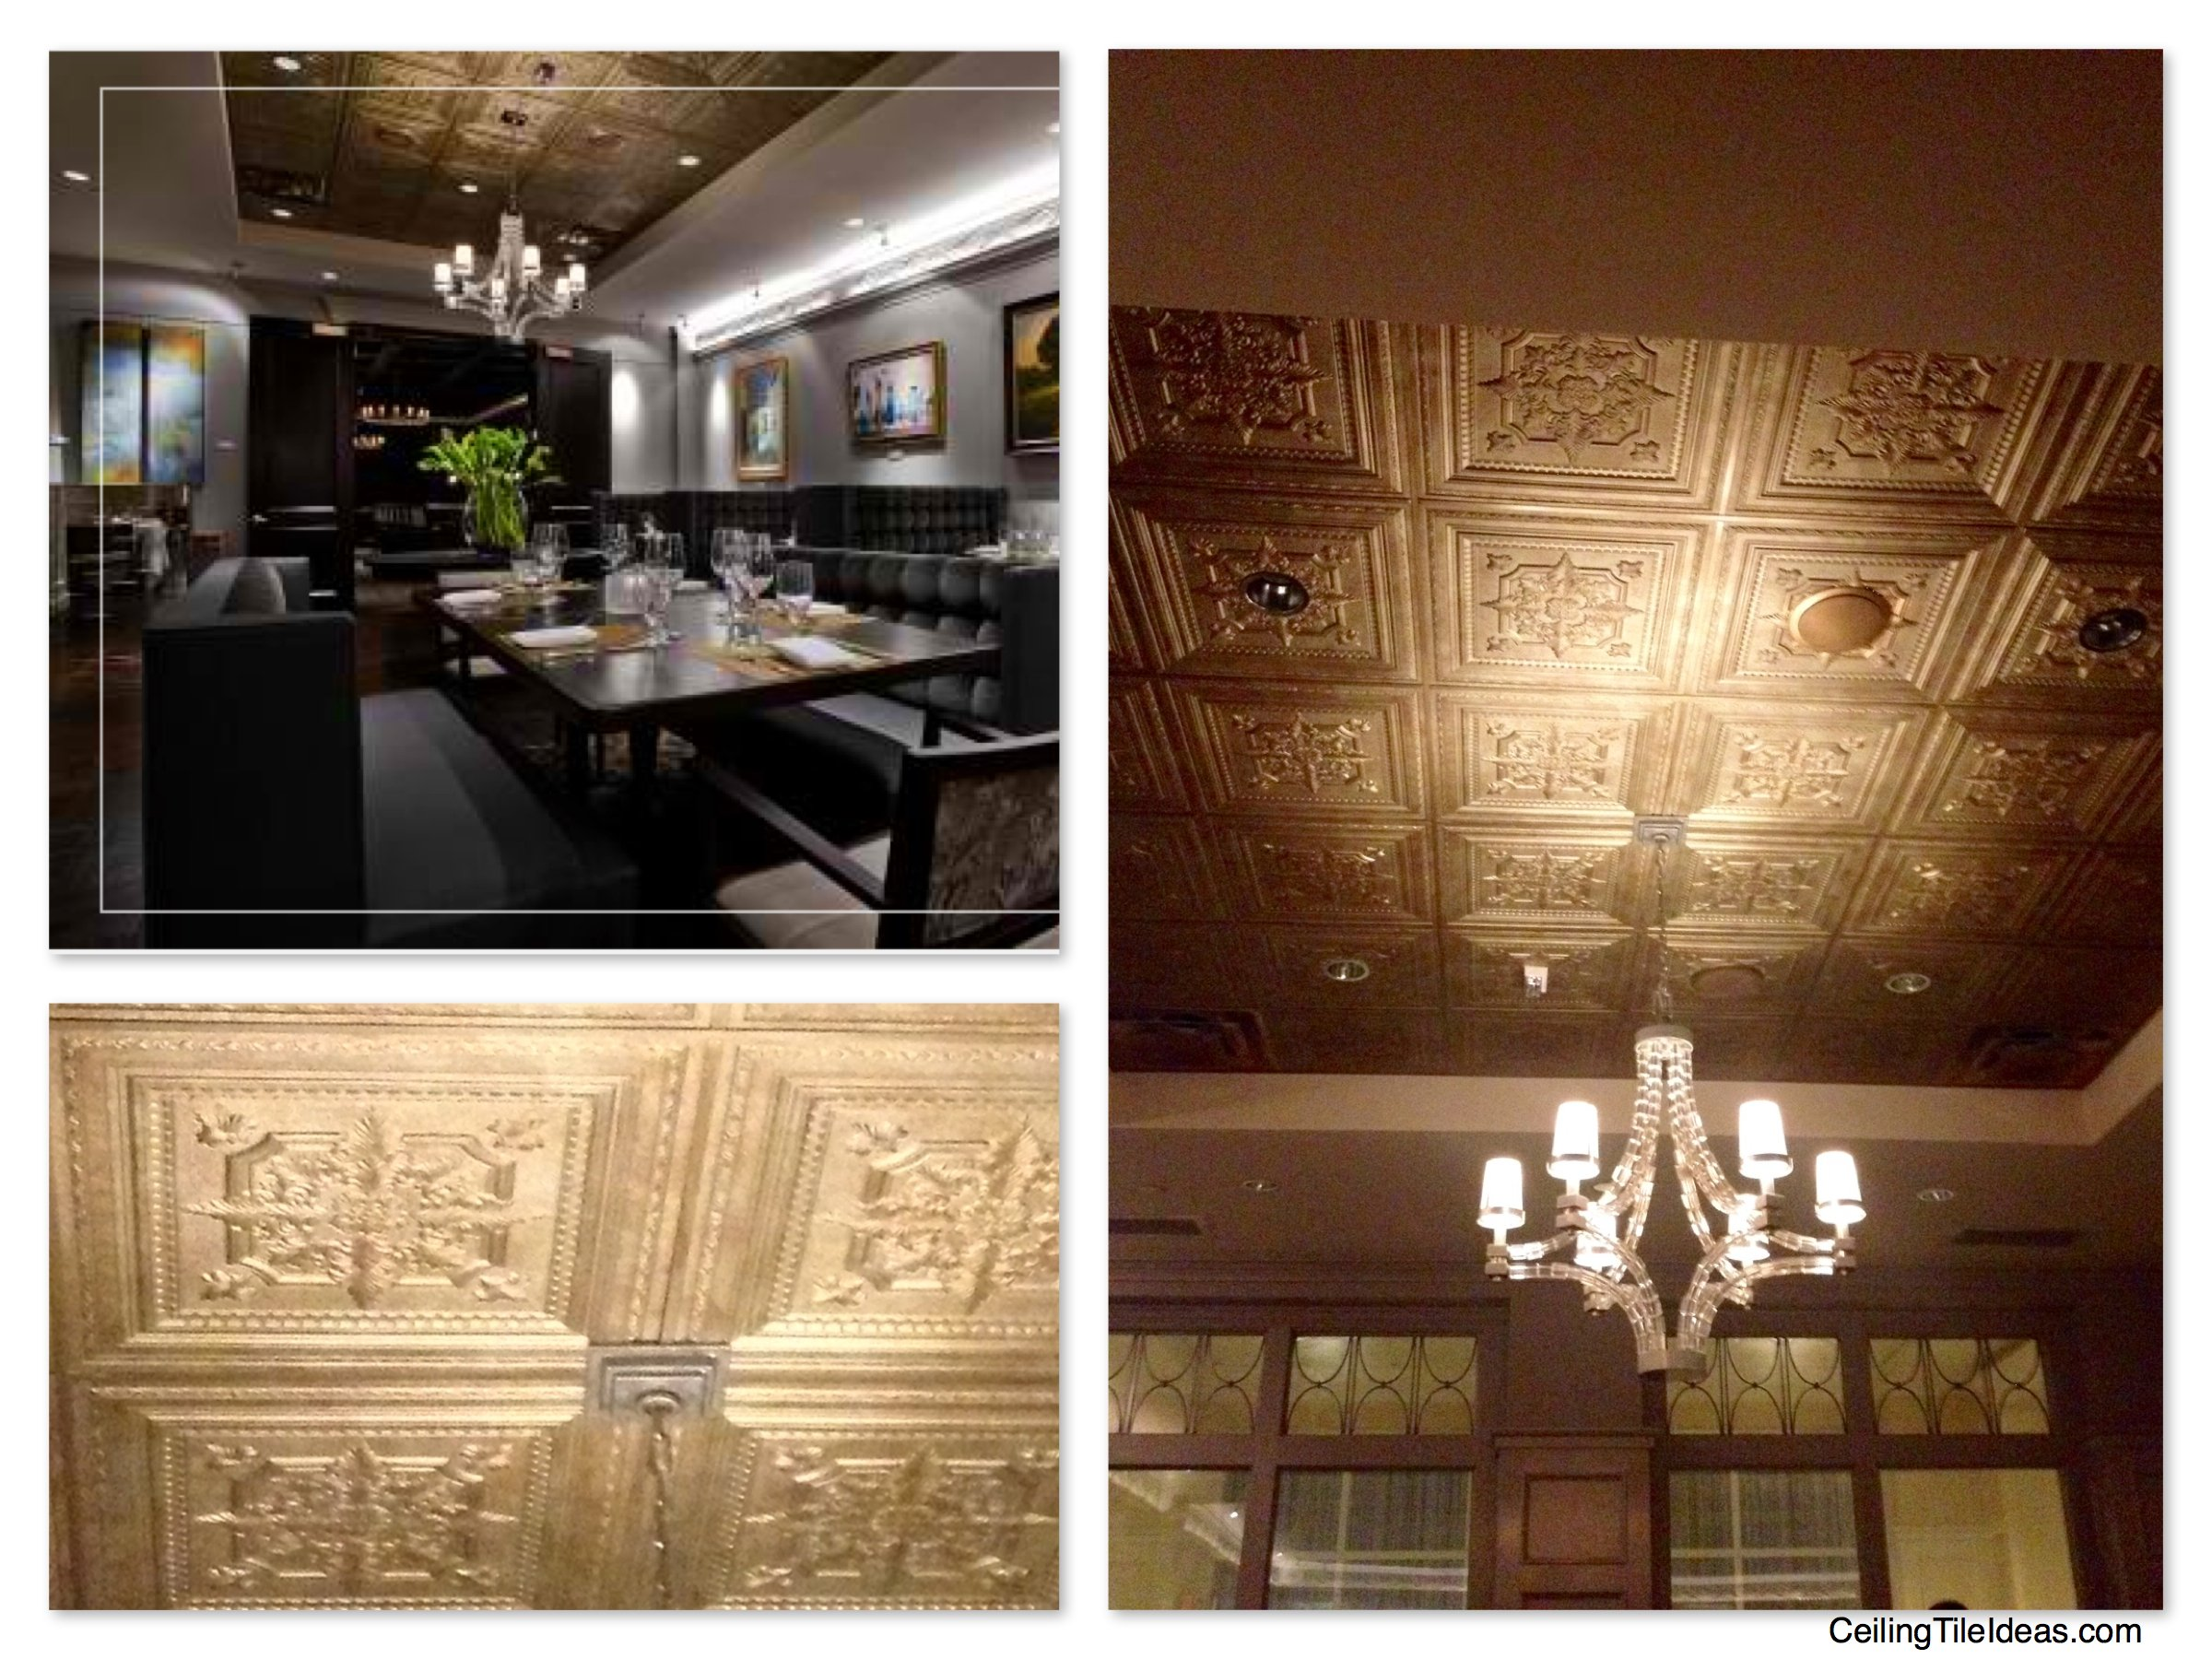 Decorative Ceiling Tiles At The Ballantyne Hotel In Charlotte North